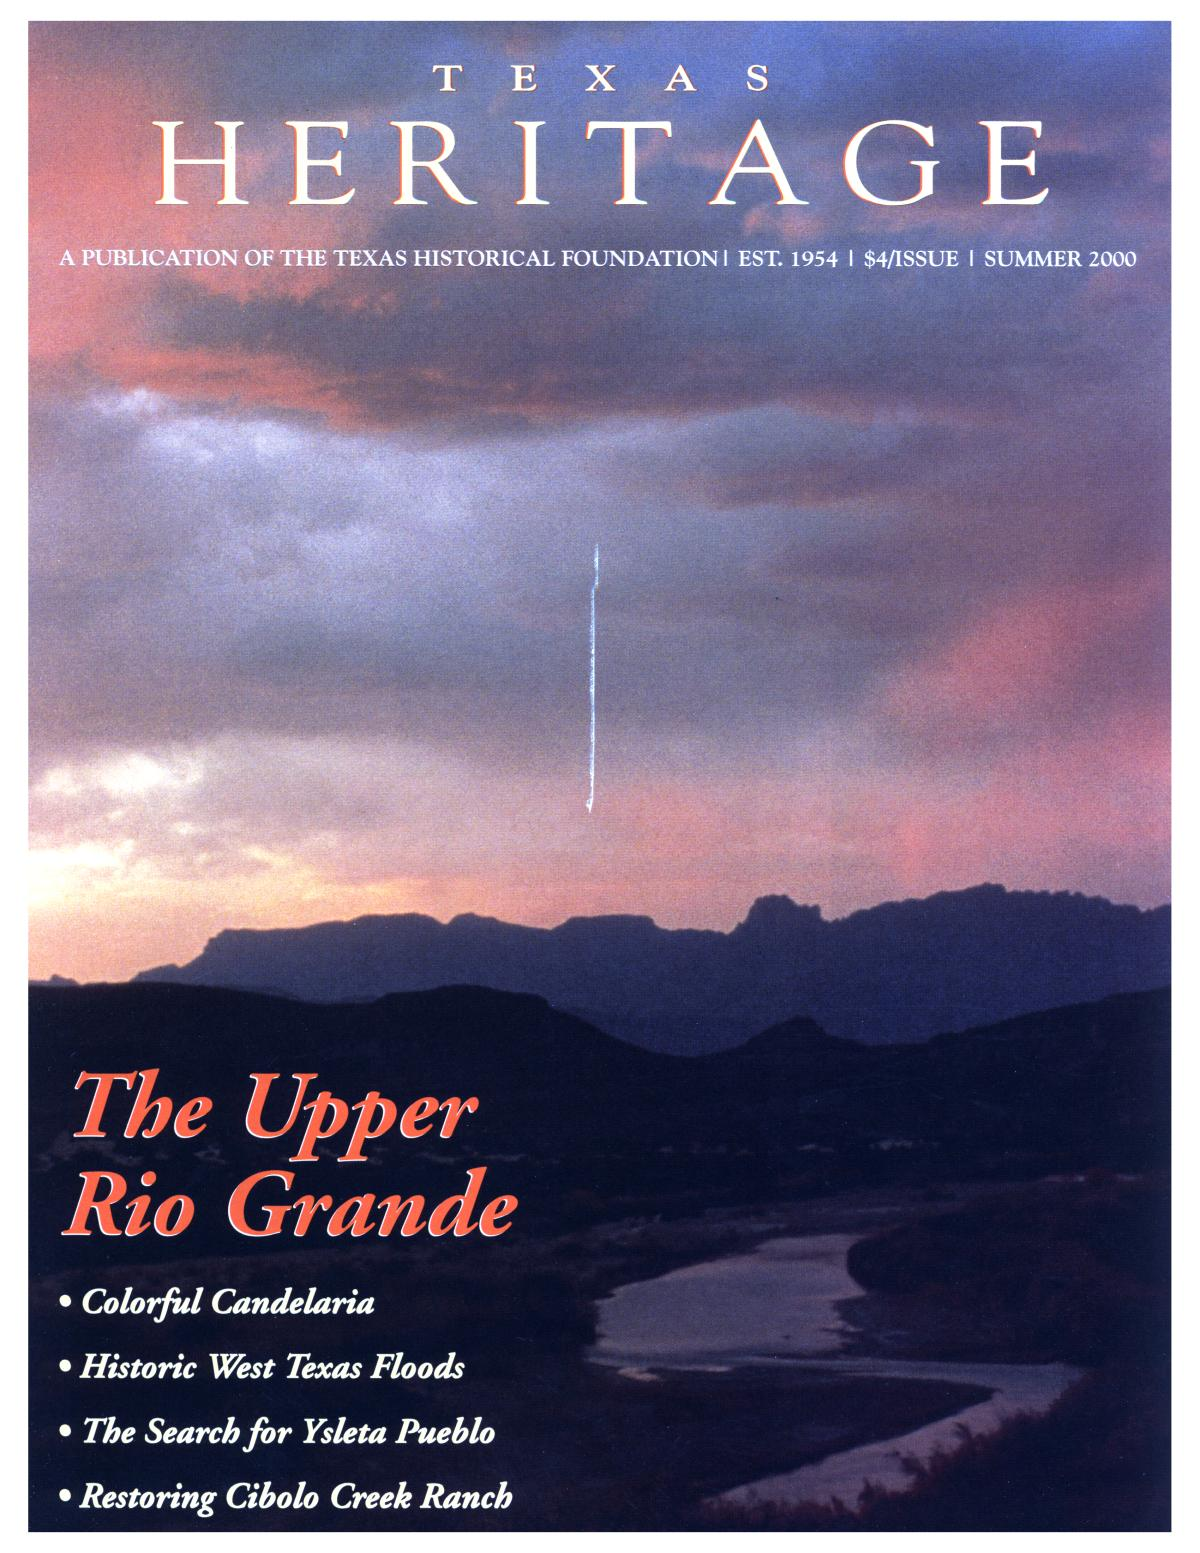 Texas Heritage, Volume 18, Number 3, Summer 2000                                                                                                      Front Cover